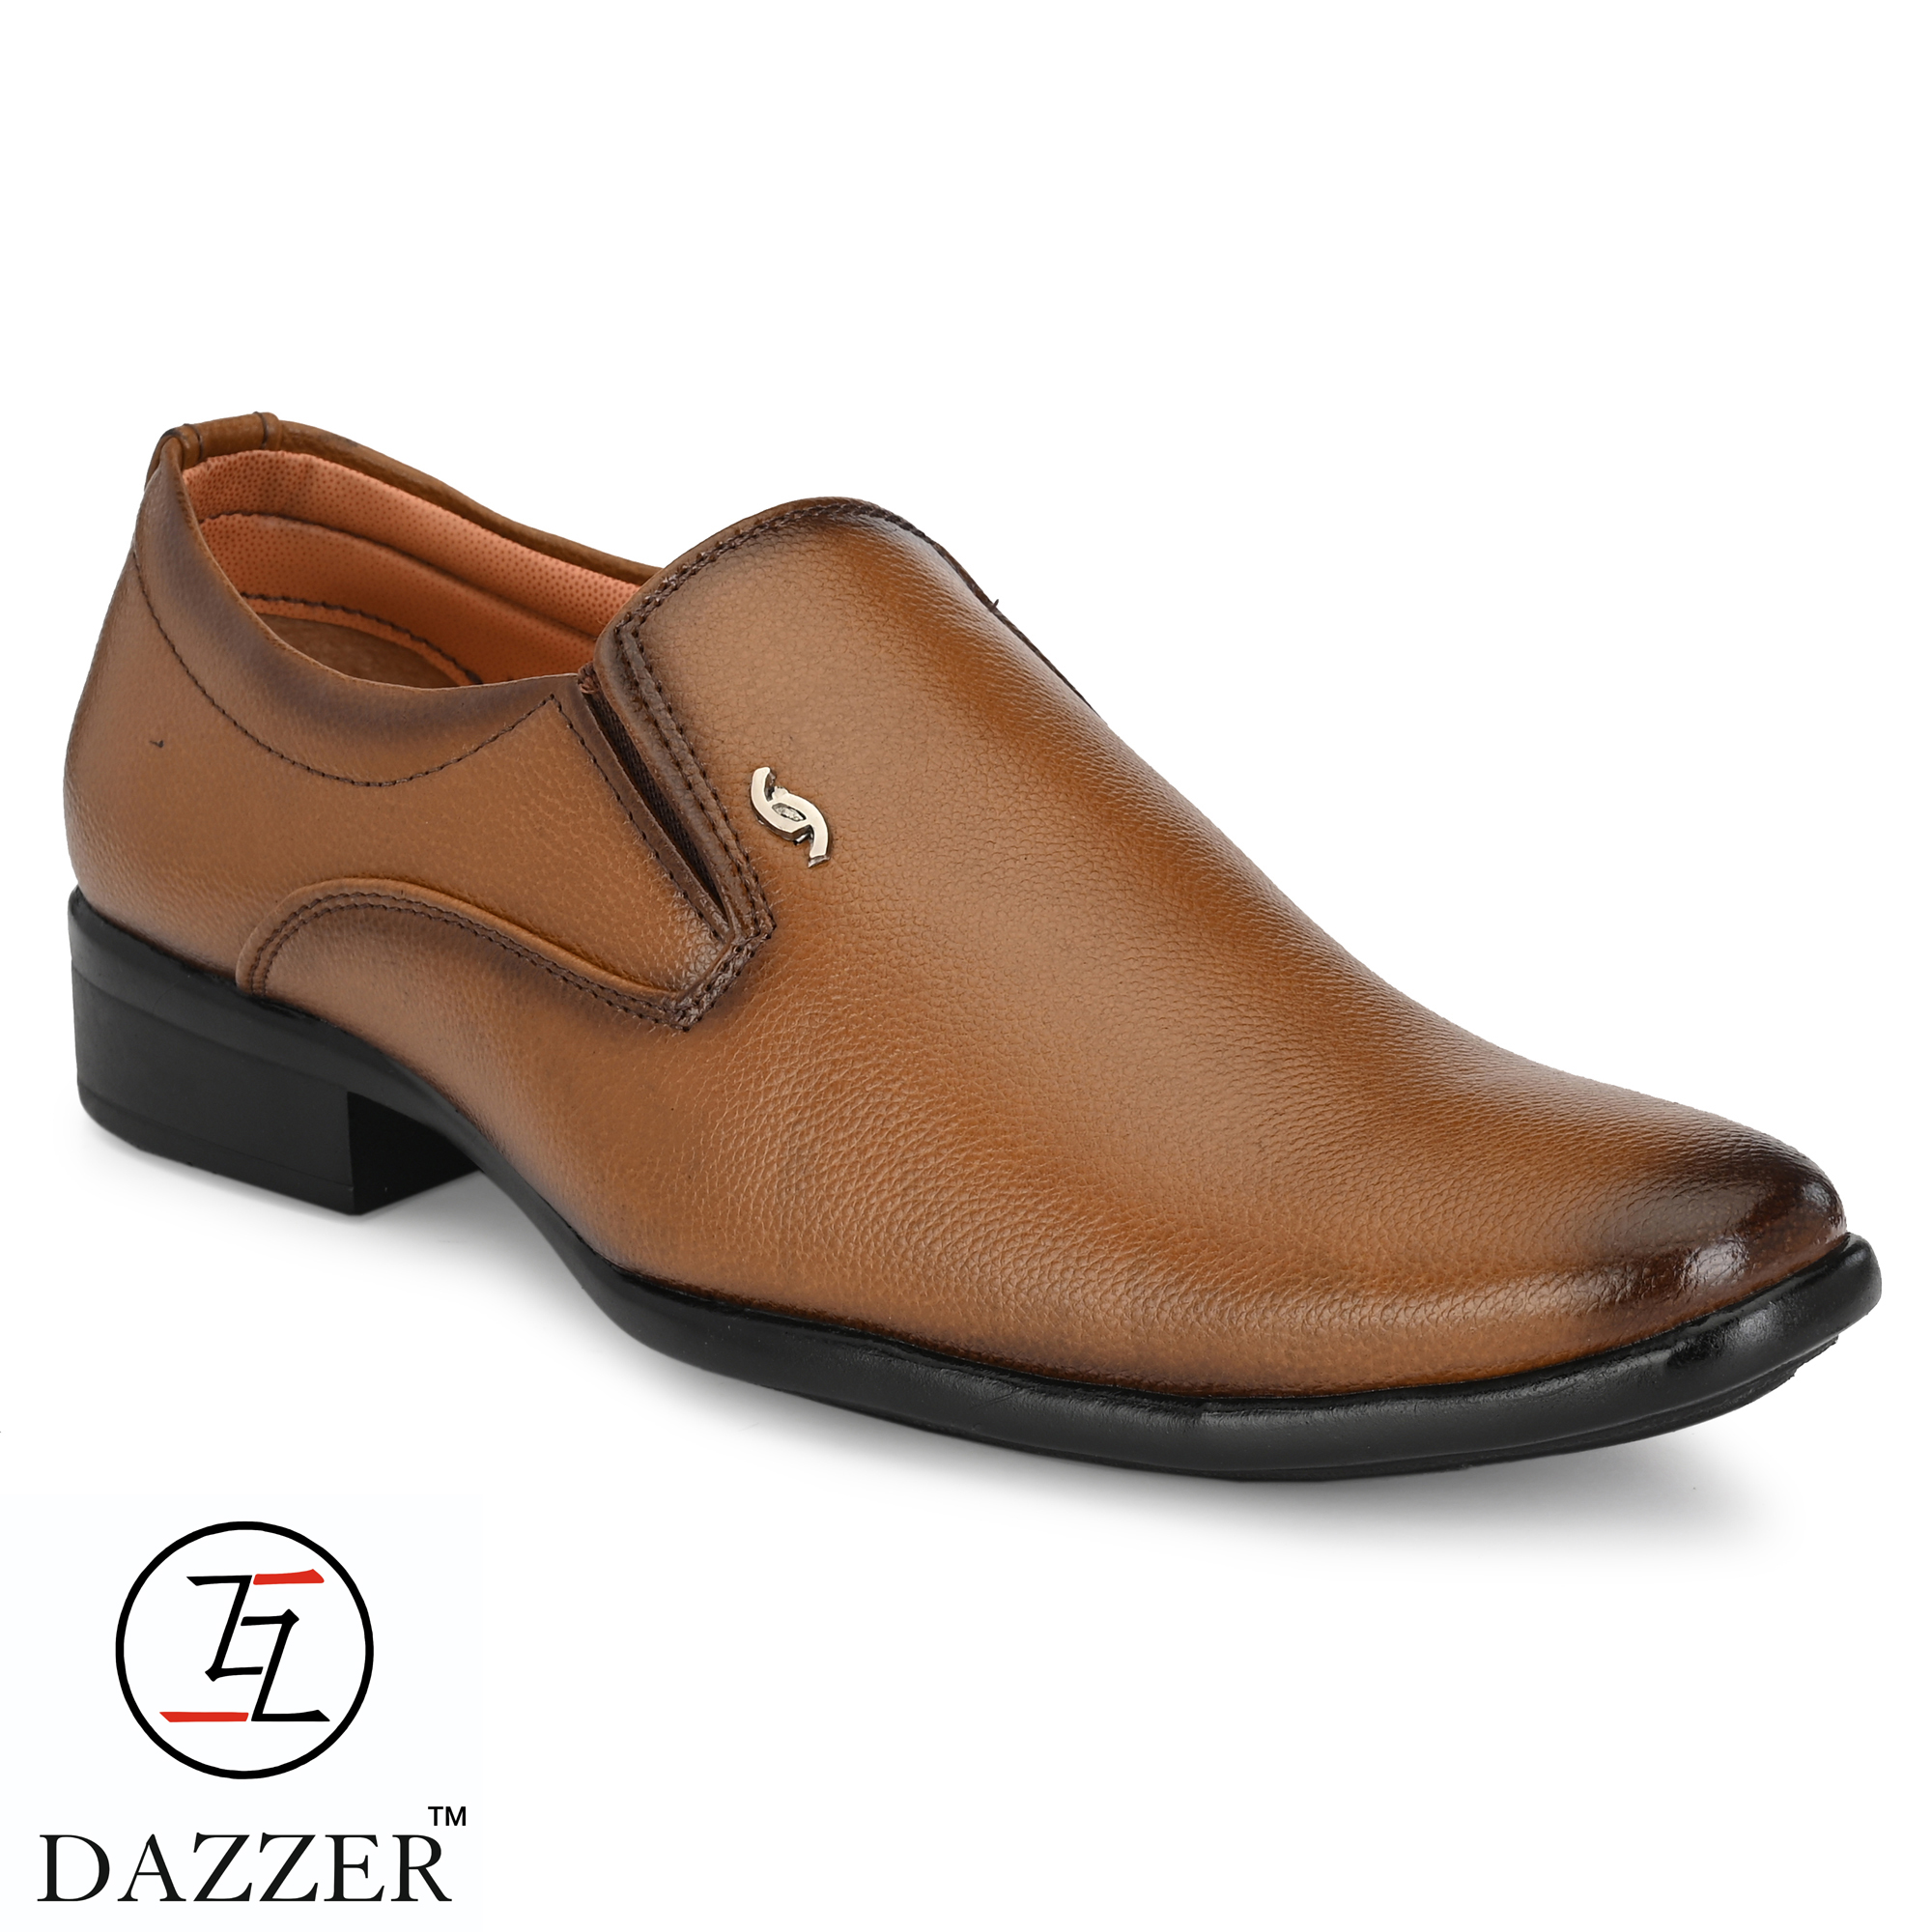 Dazzer 629 Slip On Synthetic Formal Shoes For Men 629Tan. (Tan, 6-10, 8 PAIR)